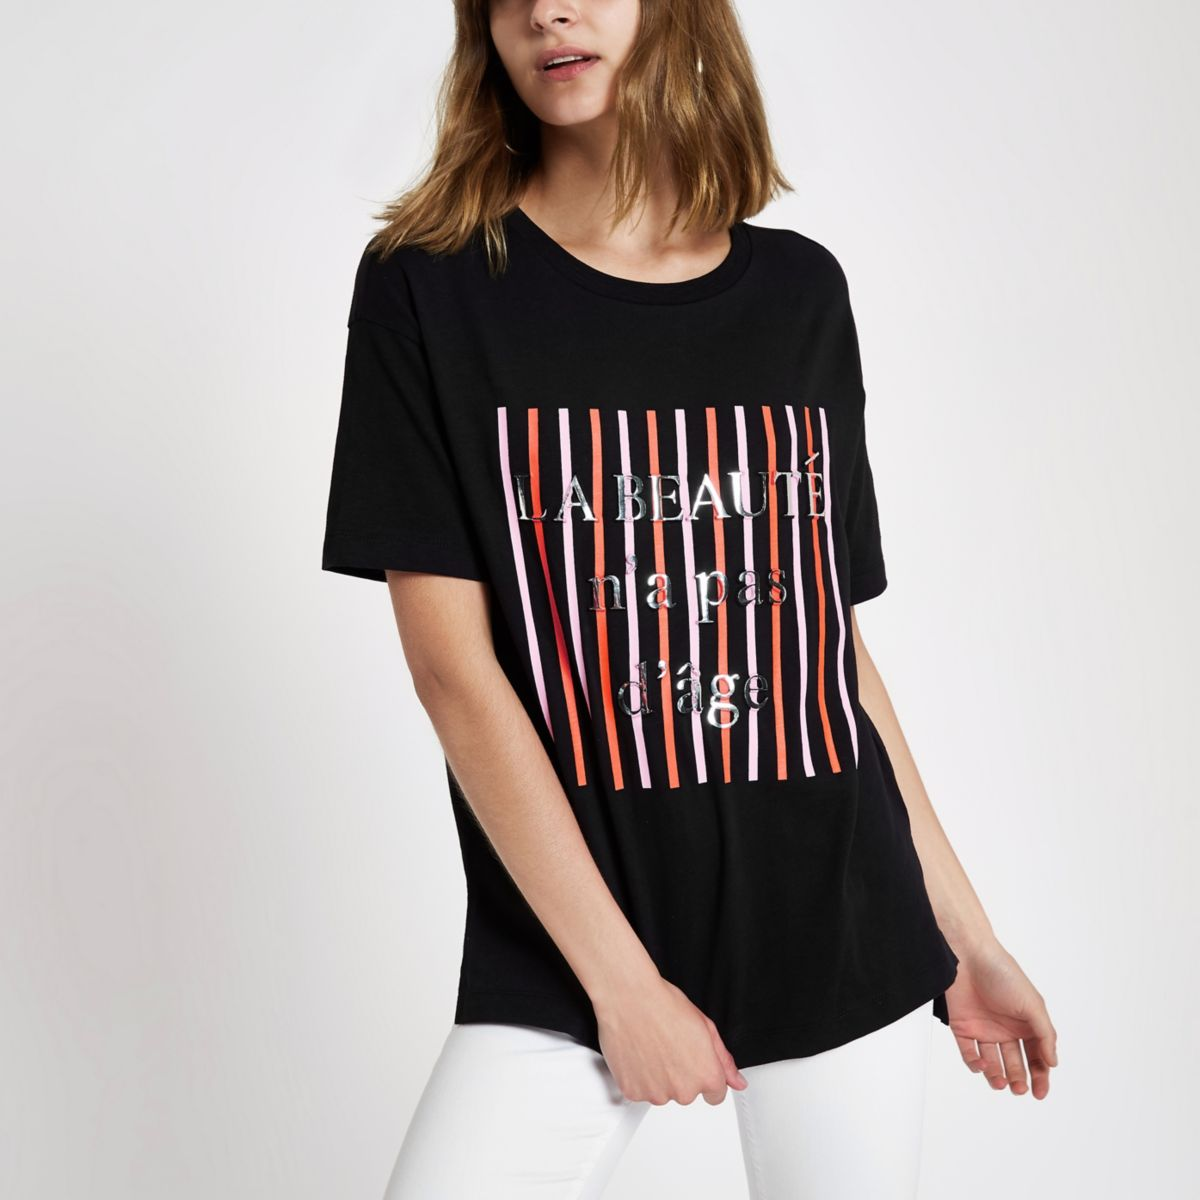 Black 'La beaute' stripe T-shirt